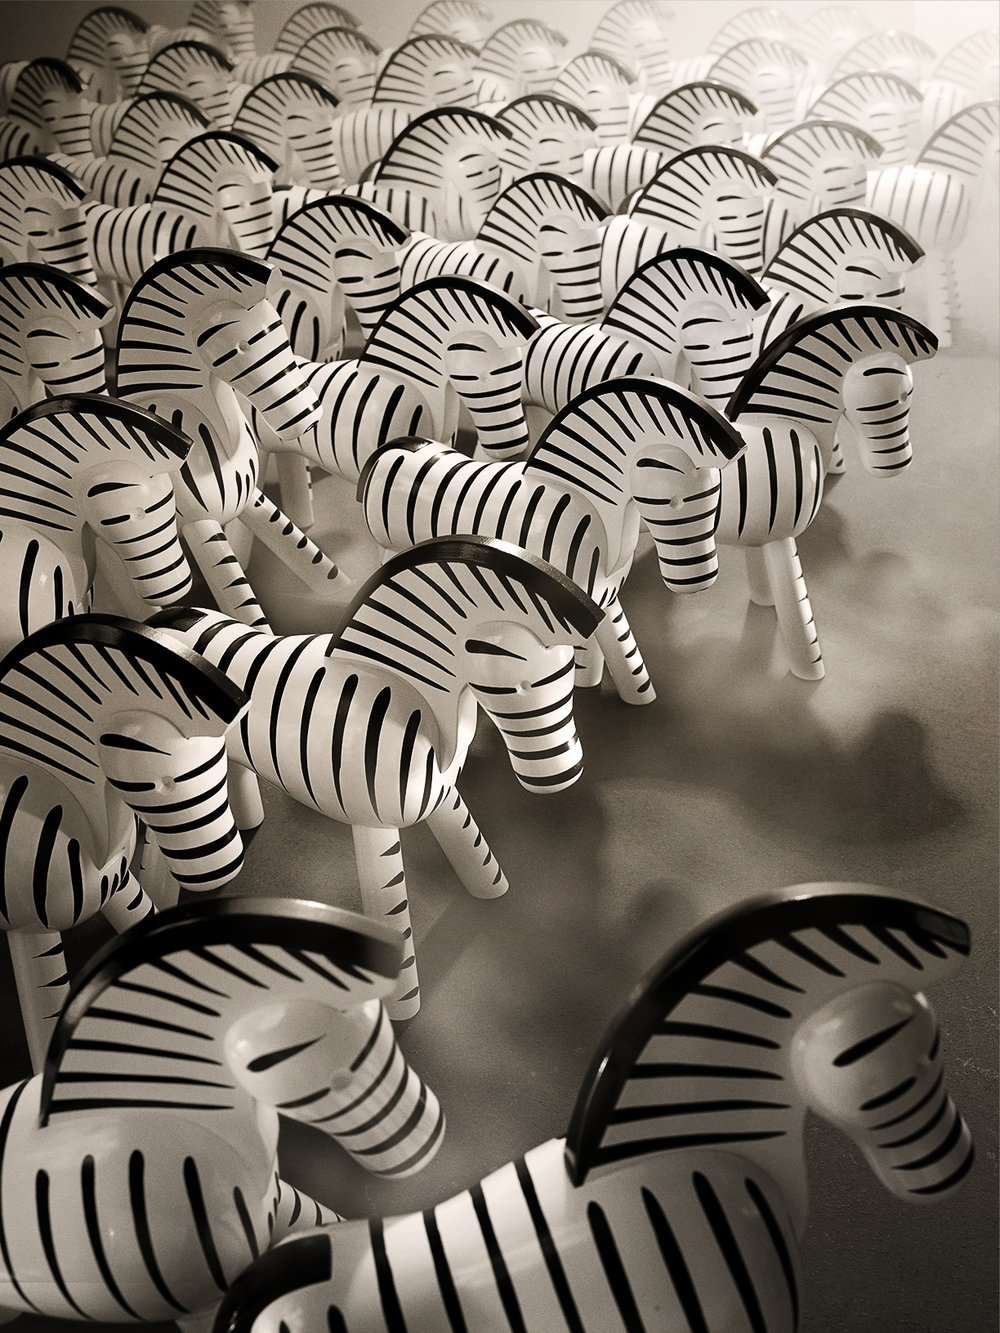 Wooden Zebras. Hagedornhagen's interpretation of the original drawings by Kaj Bojesen a Scandinavian icon.